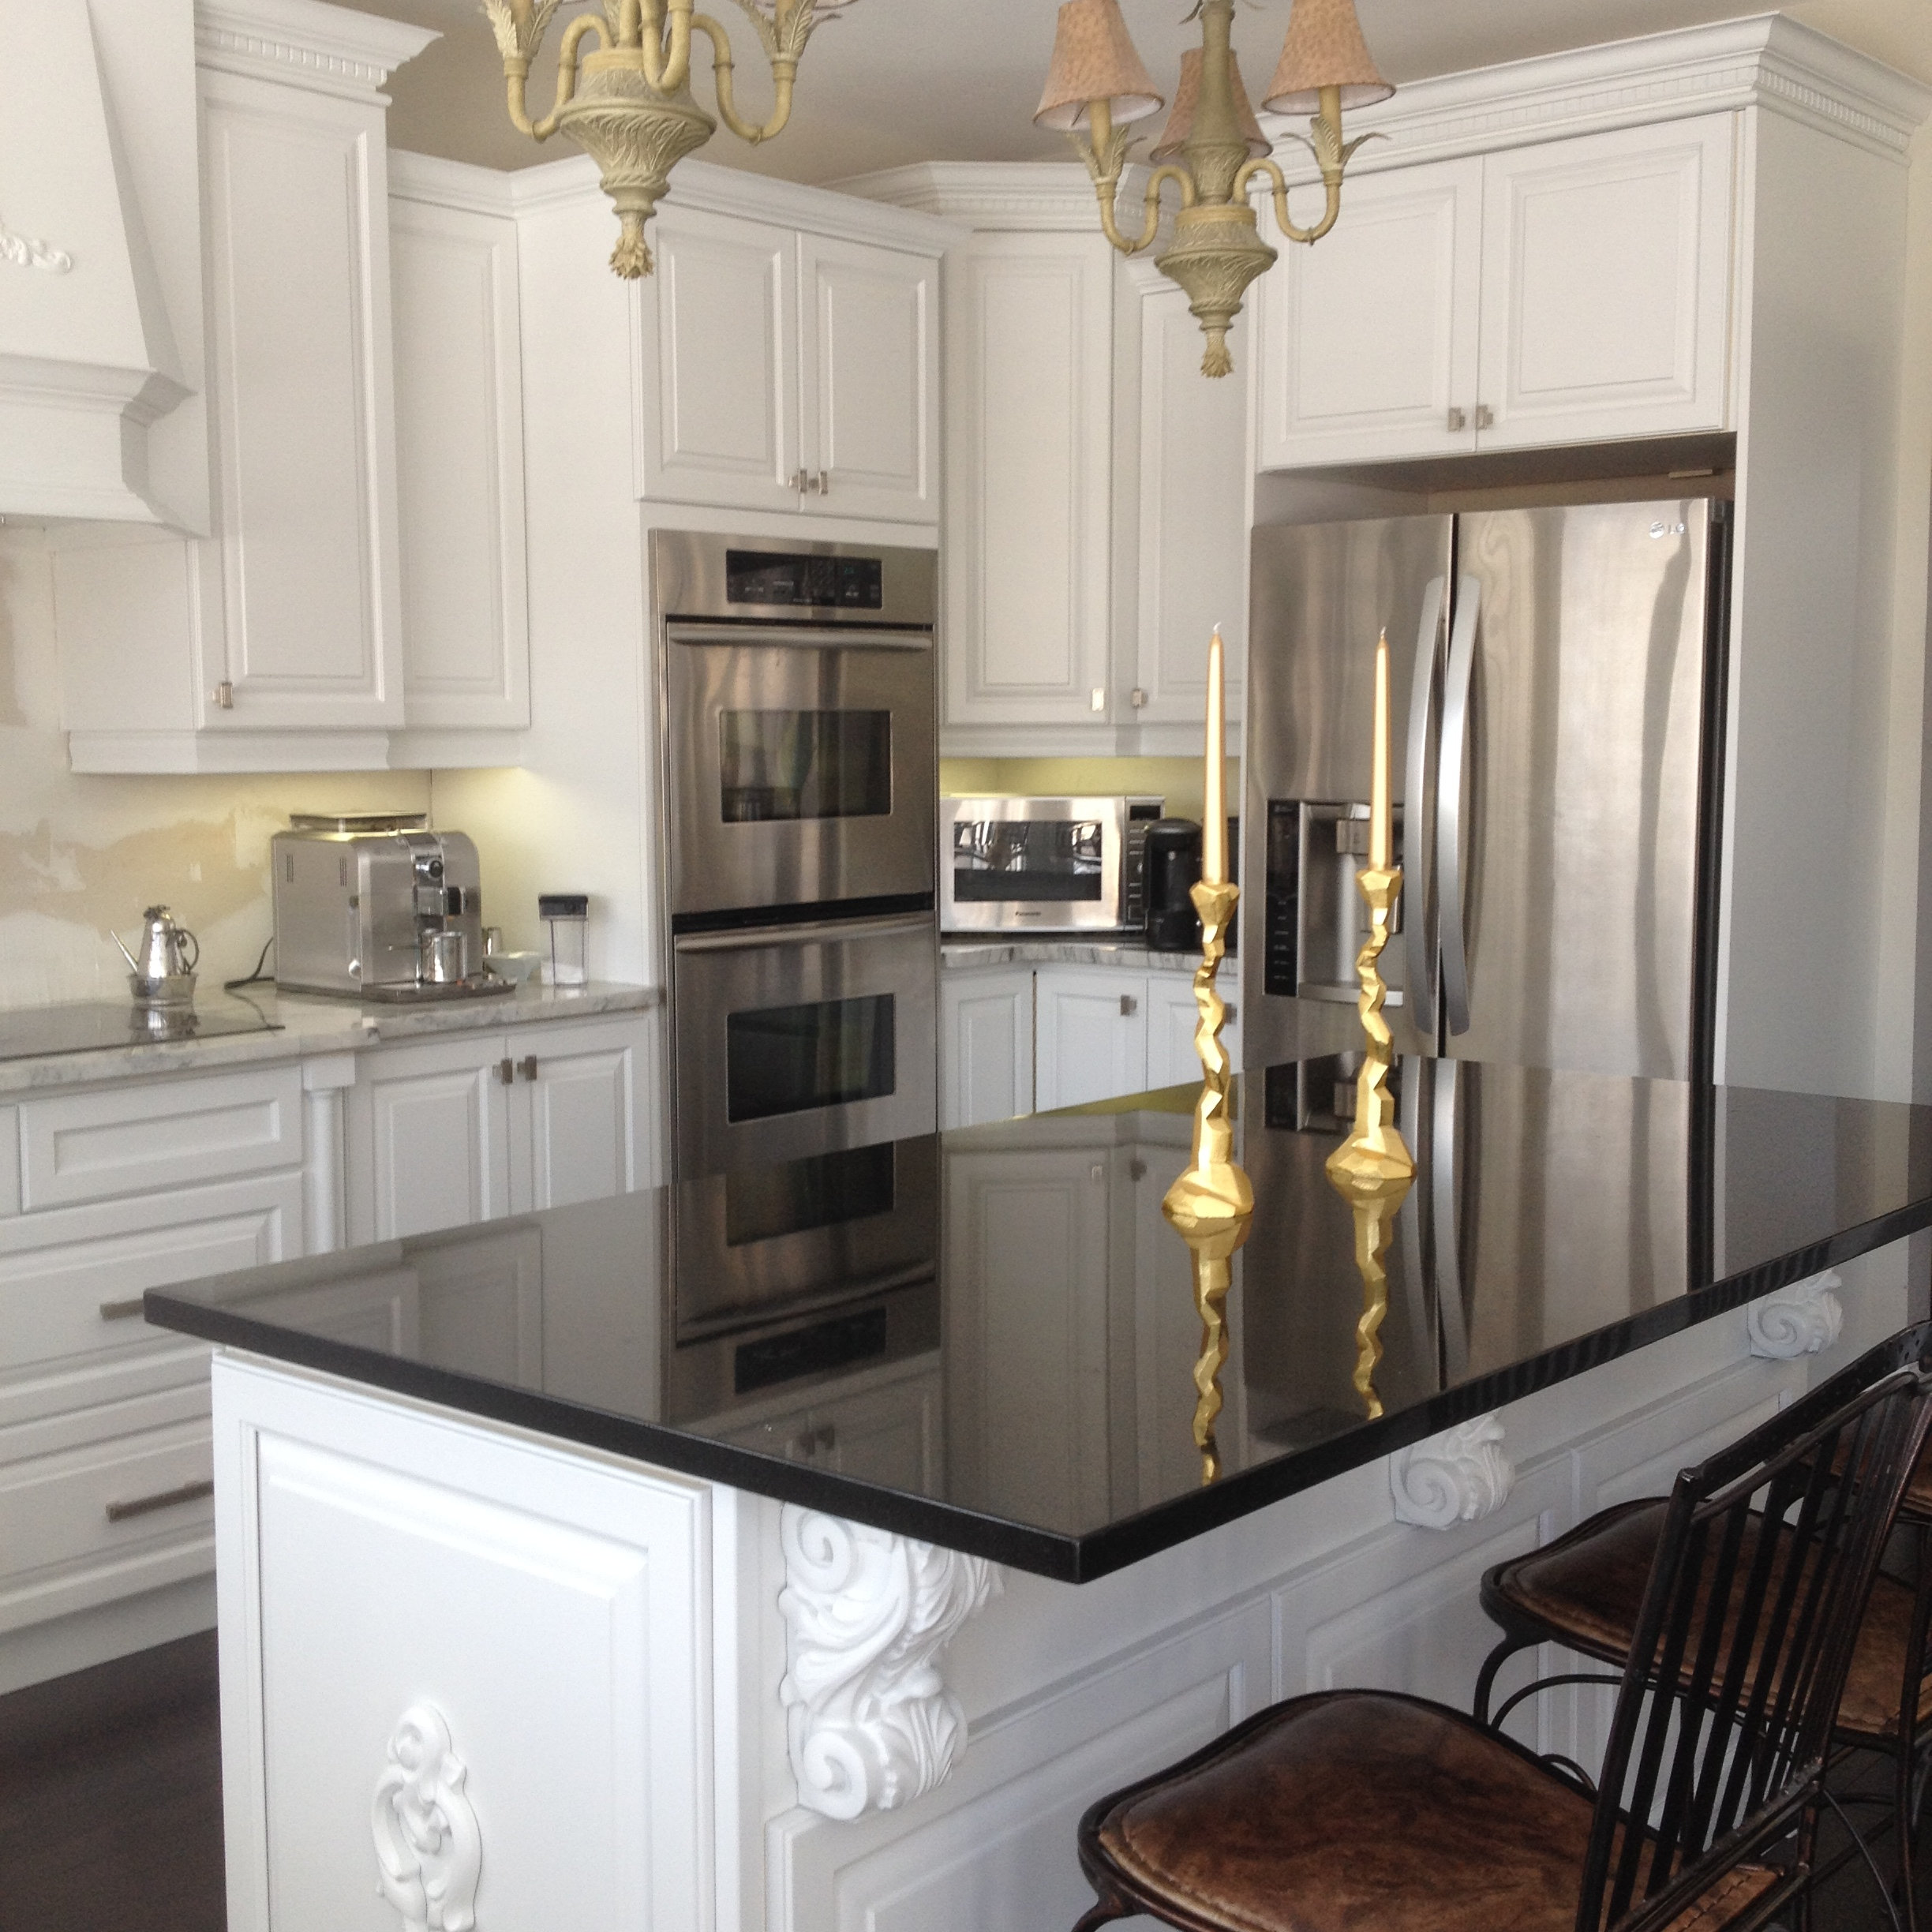 Kitchen Cabinet Doors Oakvillecabinet refinishing spray painting and kitchen cabinet painting